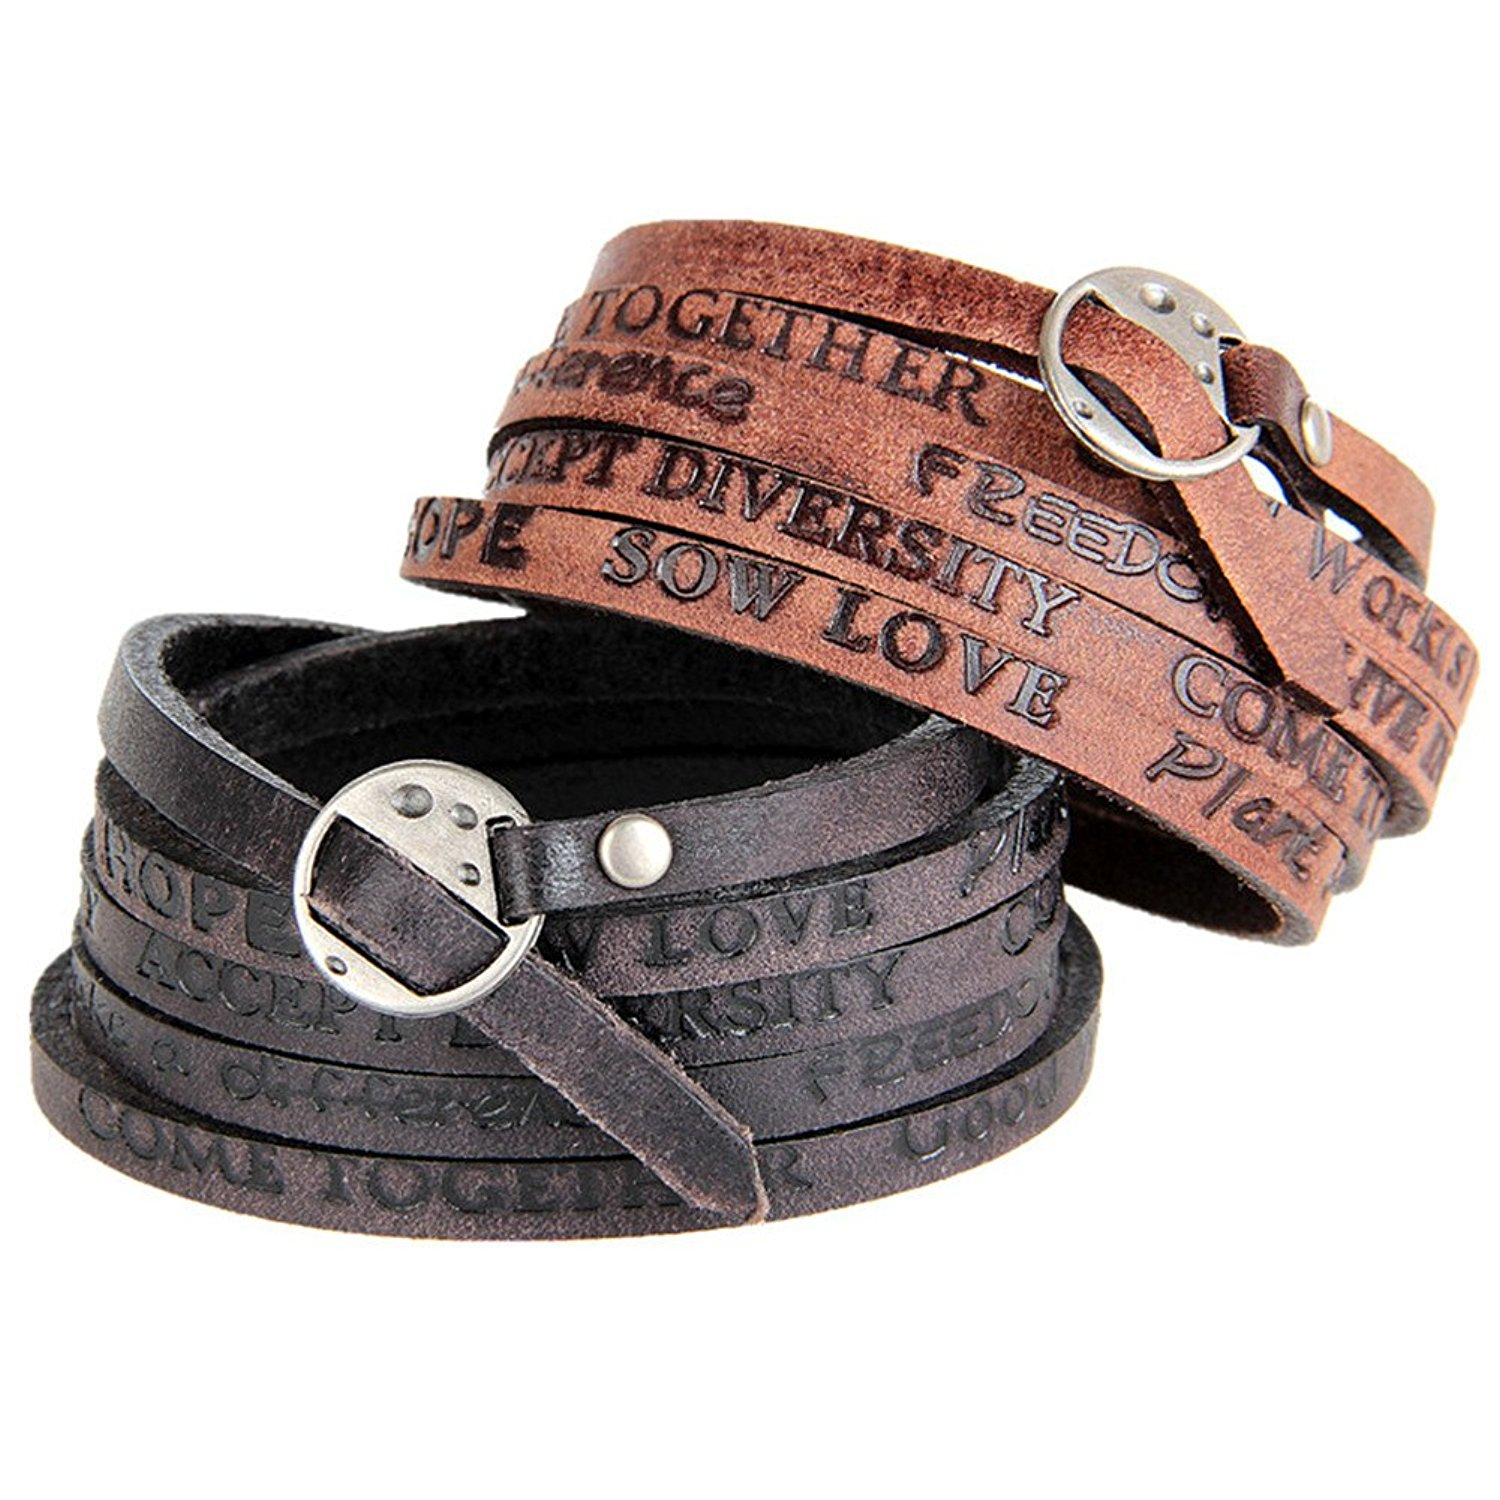 LiFashion LF Mens Handmade Brown Cowhide Leather Heartbeat Wristband Heart Beat Stethoscope Love Adjustable Bracelet for Boyfriend Husband for Engagement Anniversary Birthday Dated Gift